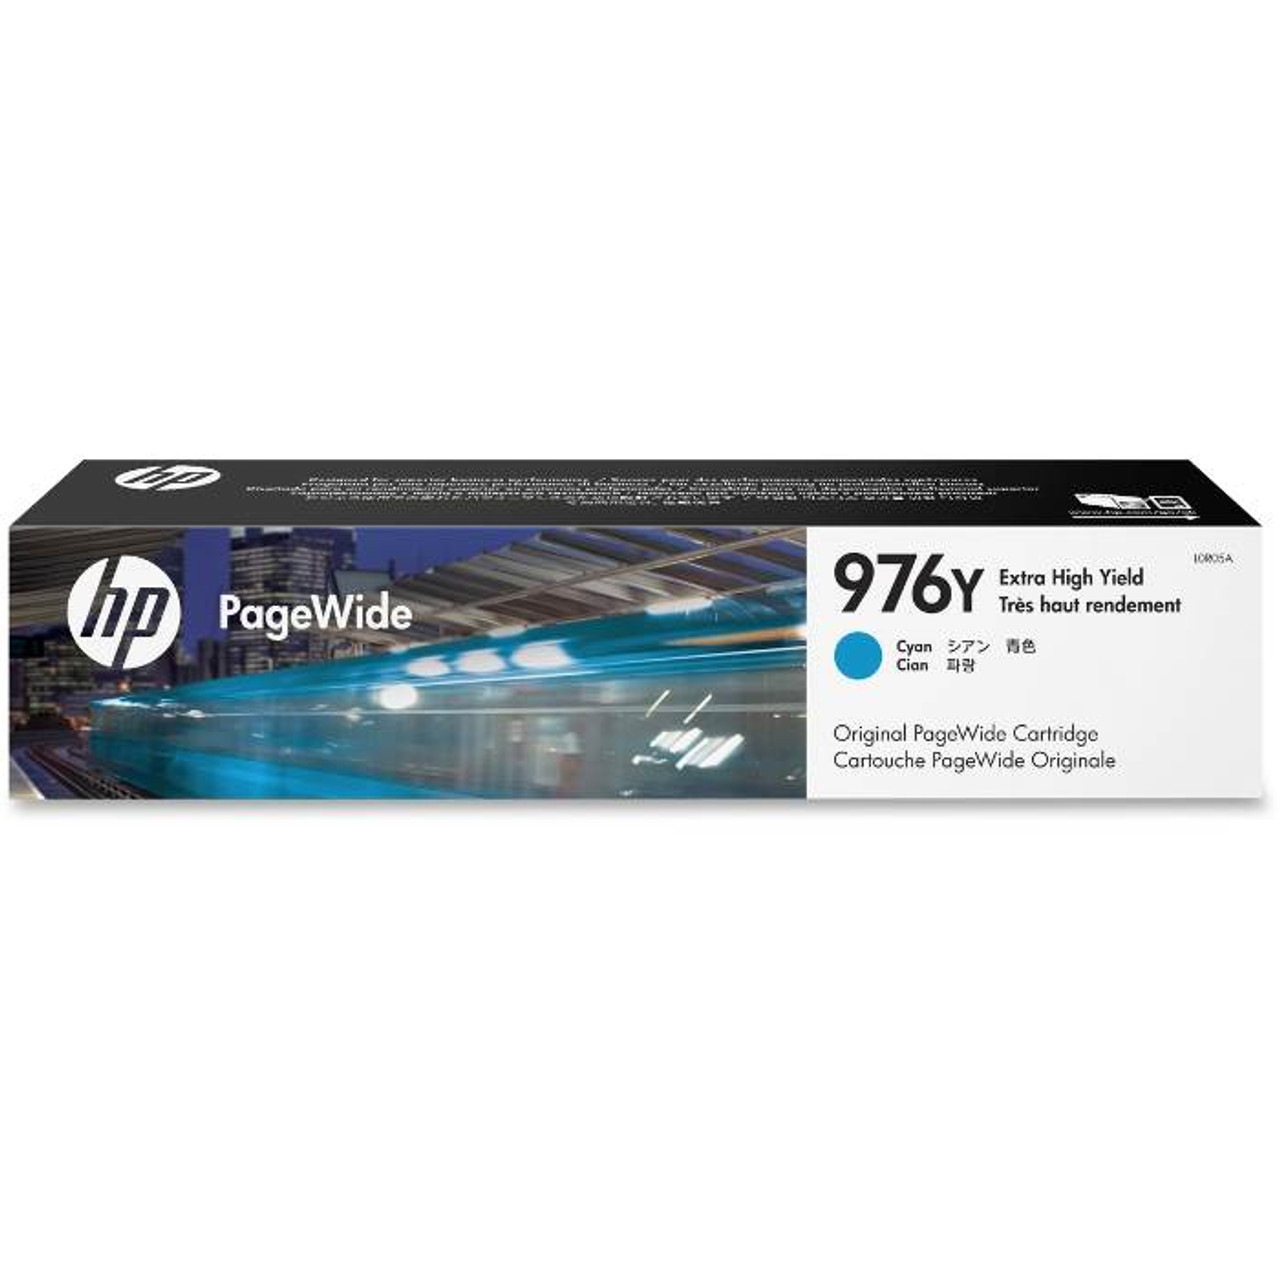 Image for HP 976Y Extra High Yield Cyan Original PageWide Cartridge (L0R05A) CX Computer Superstore